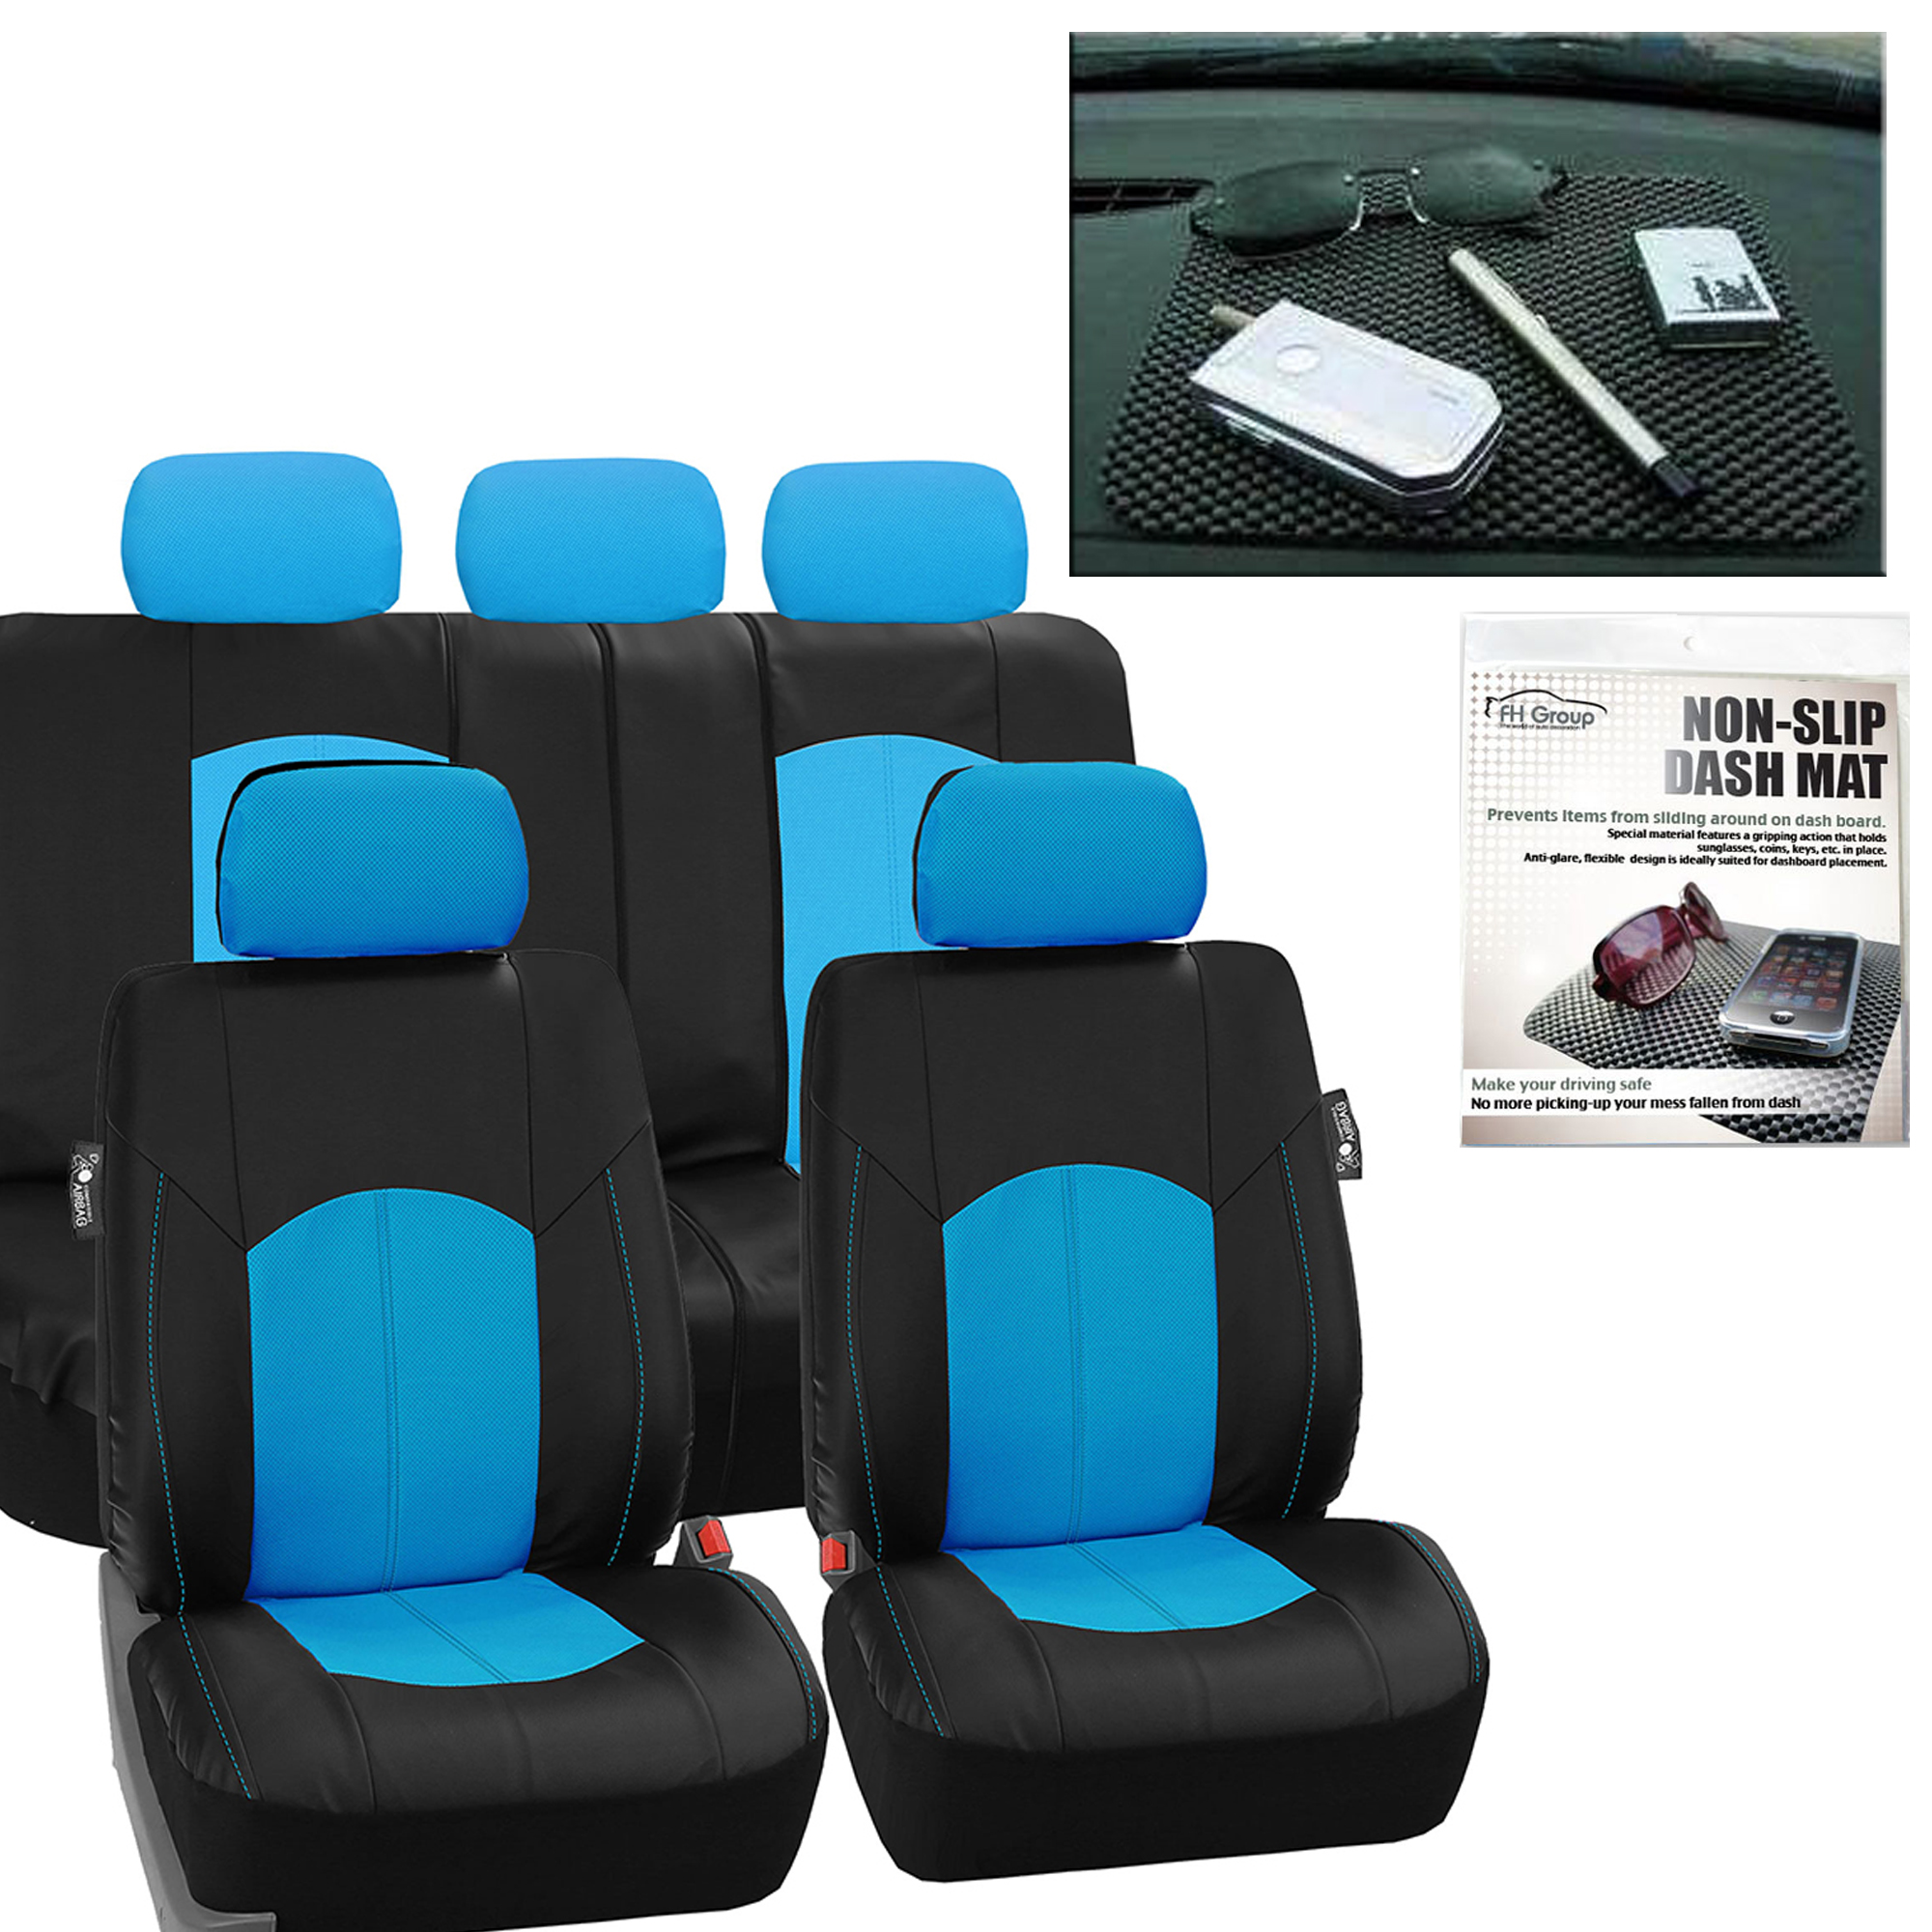 FH Group, Perforated Leather Seat Covers for Auto Car Sedan SUV Van, Full Set with Auto Dash Grip Pad, 8 Colors